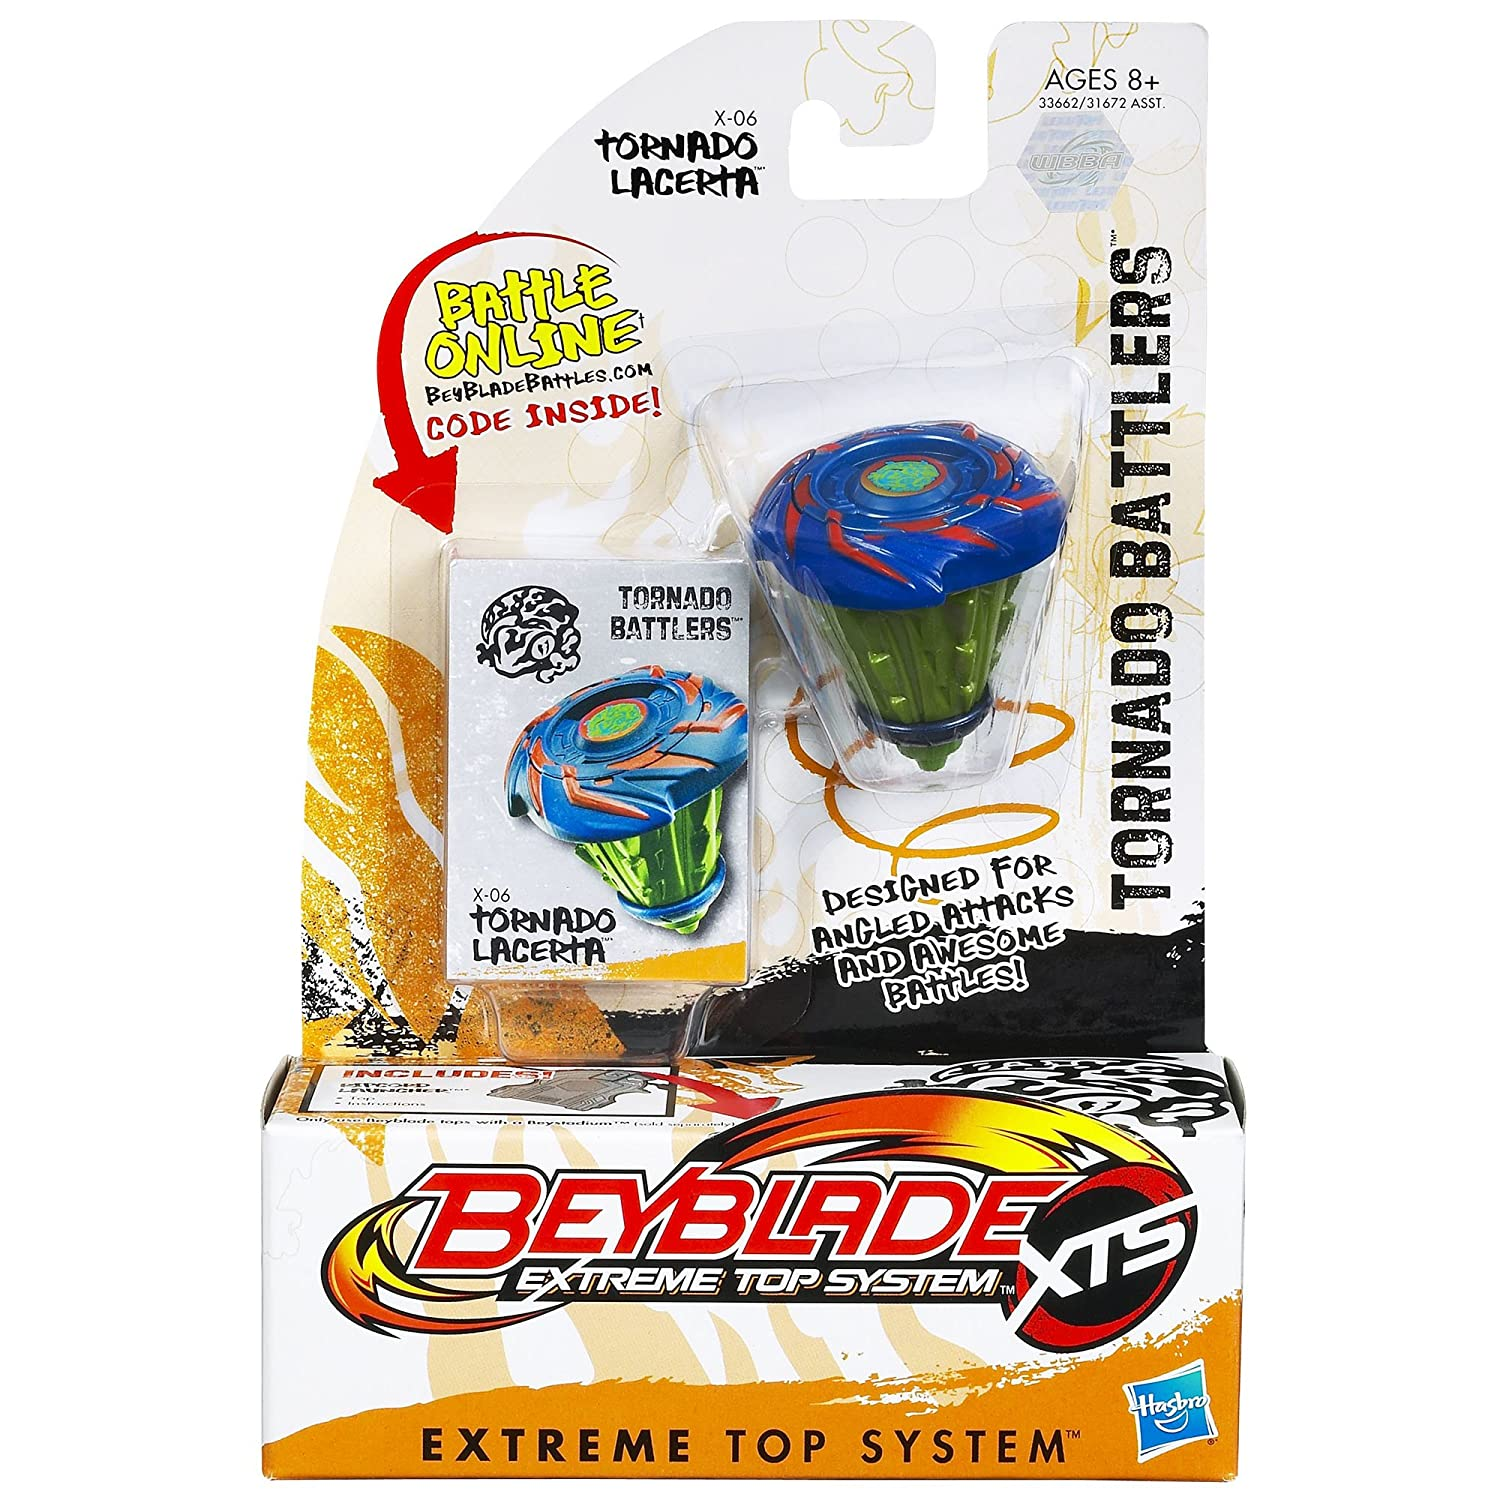 Beyblade Extreme Top System Tornado Battlers X-06 Tornado Lacerta Top